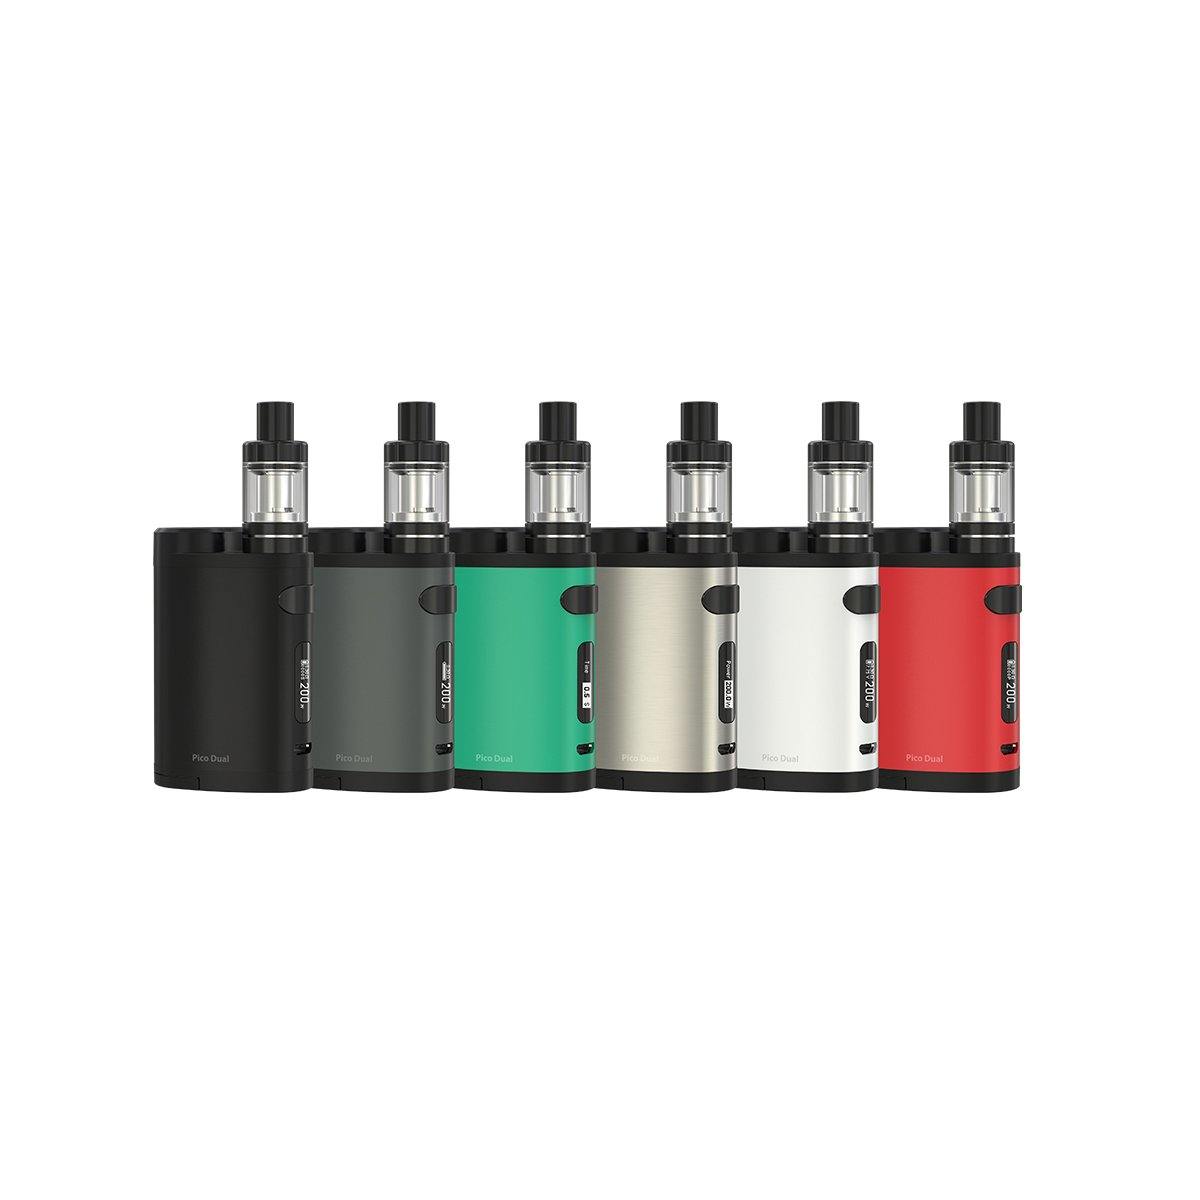 ELEAF PICO DUAL STARTER KIT - 200W BOX MOD WITH MELO III MINI TANK